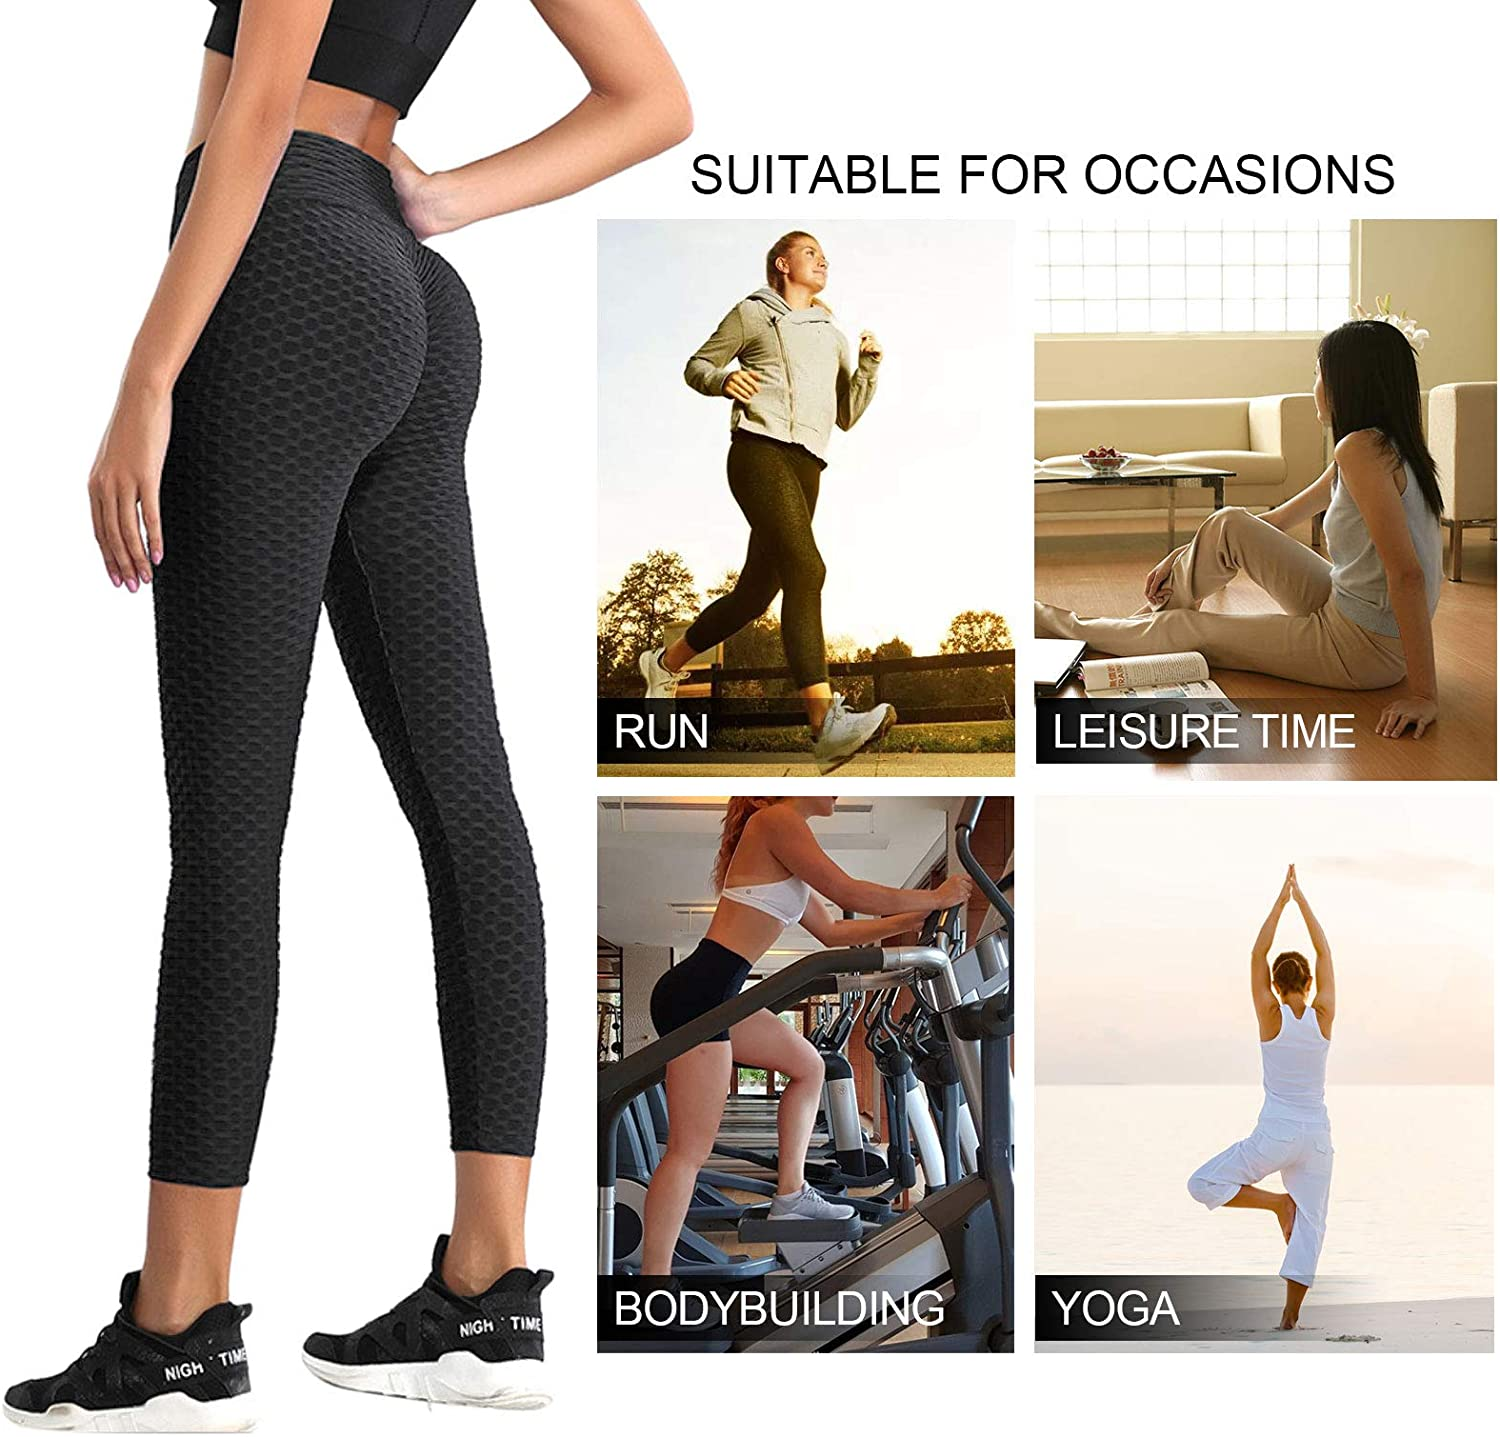 Womens High Waist Tummy Control Athletic Yoga Pants Slimming Booty Leggings Workout Running Butt Lift Tights